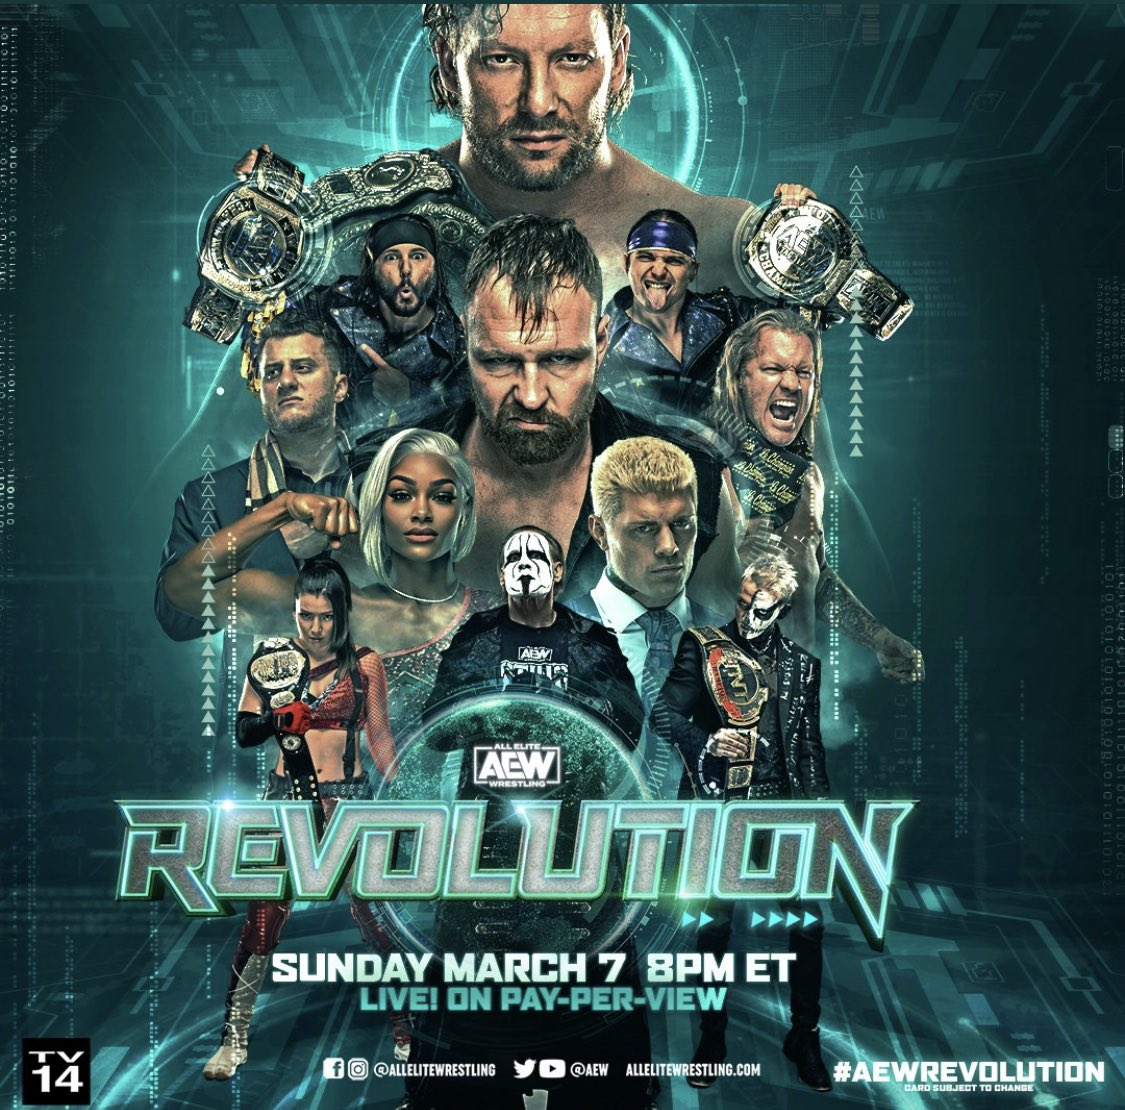 we are moments away wait from #AEWRevolution. The Promos that @AEW put together are outstanding! Who else is just as excited to view this PPV? #excited #TagTeamTitles #ChampionshipSunday #andyournew #andstill #thisisawesome #fightforever #what #onefall #tougherthanatwodollarsteak